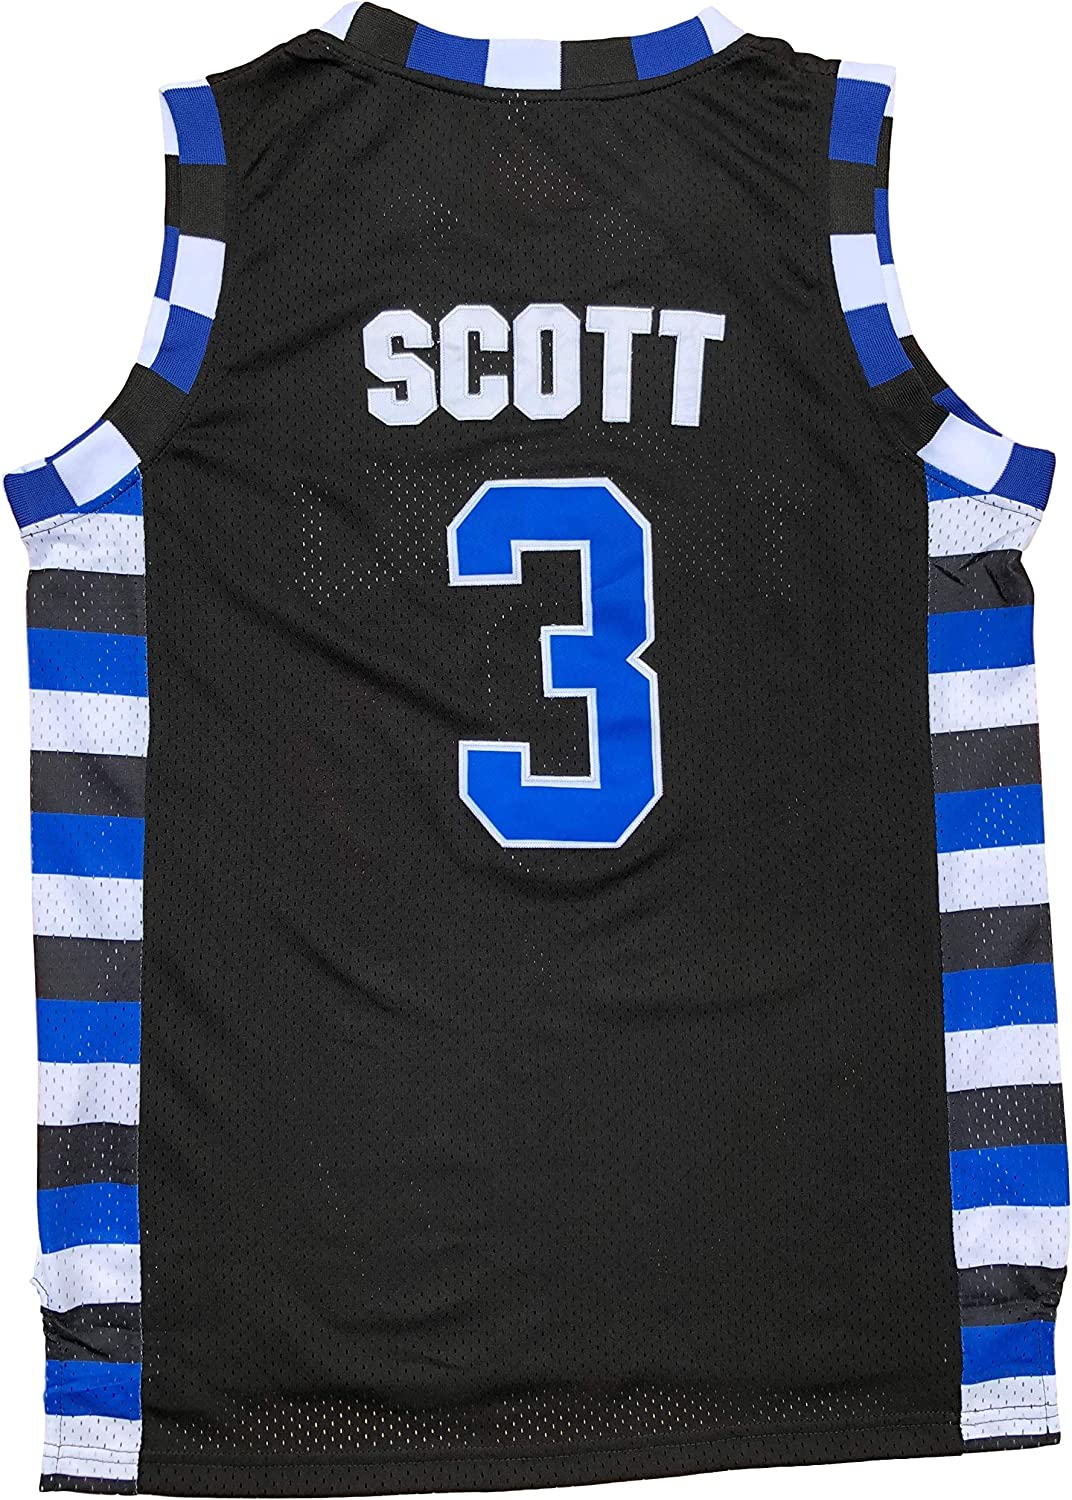 Lucas Scott #3 One Tree Hill Ravens Throwback Basketball Jersey S-XXL